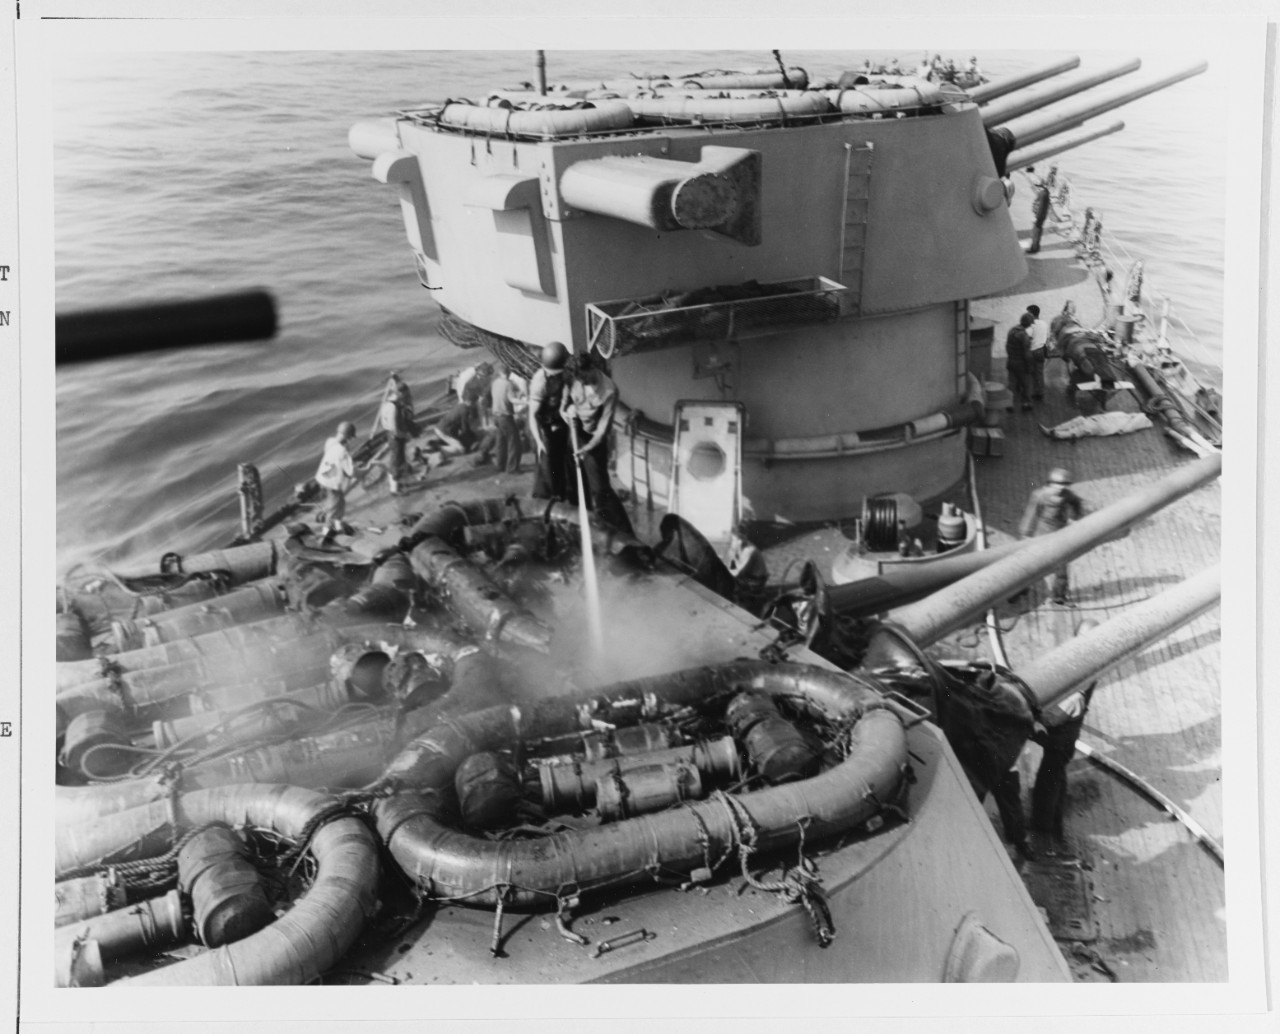 Photo #: 80-G-54357  USS Savannah (CL-42)